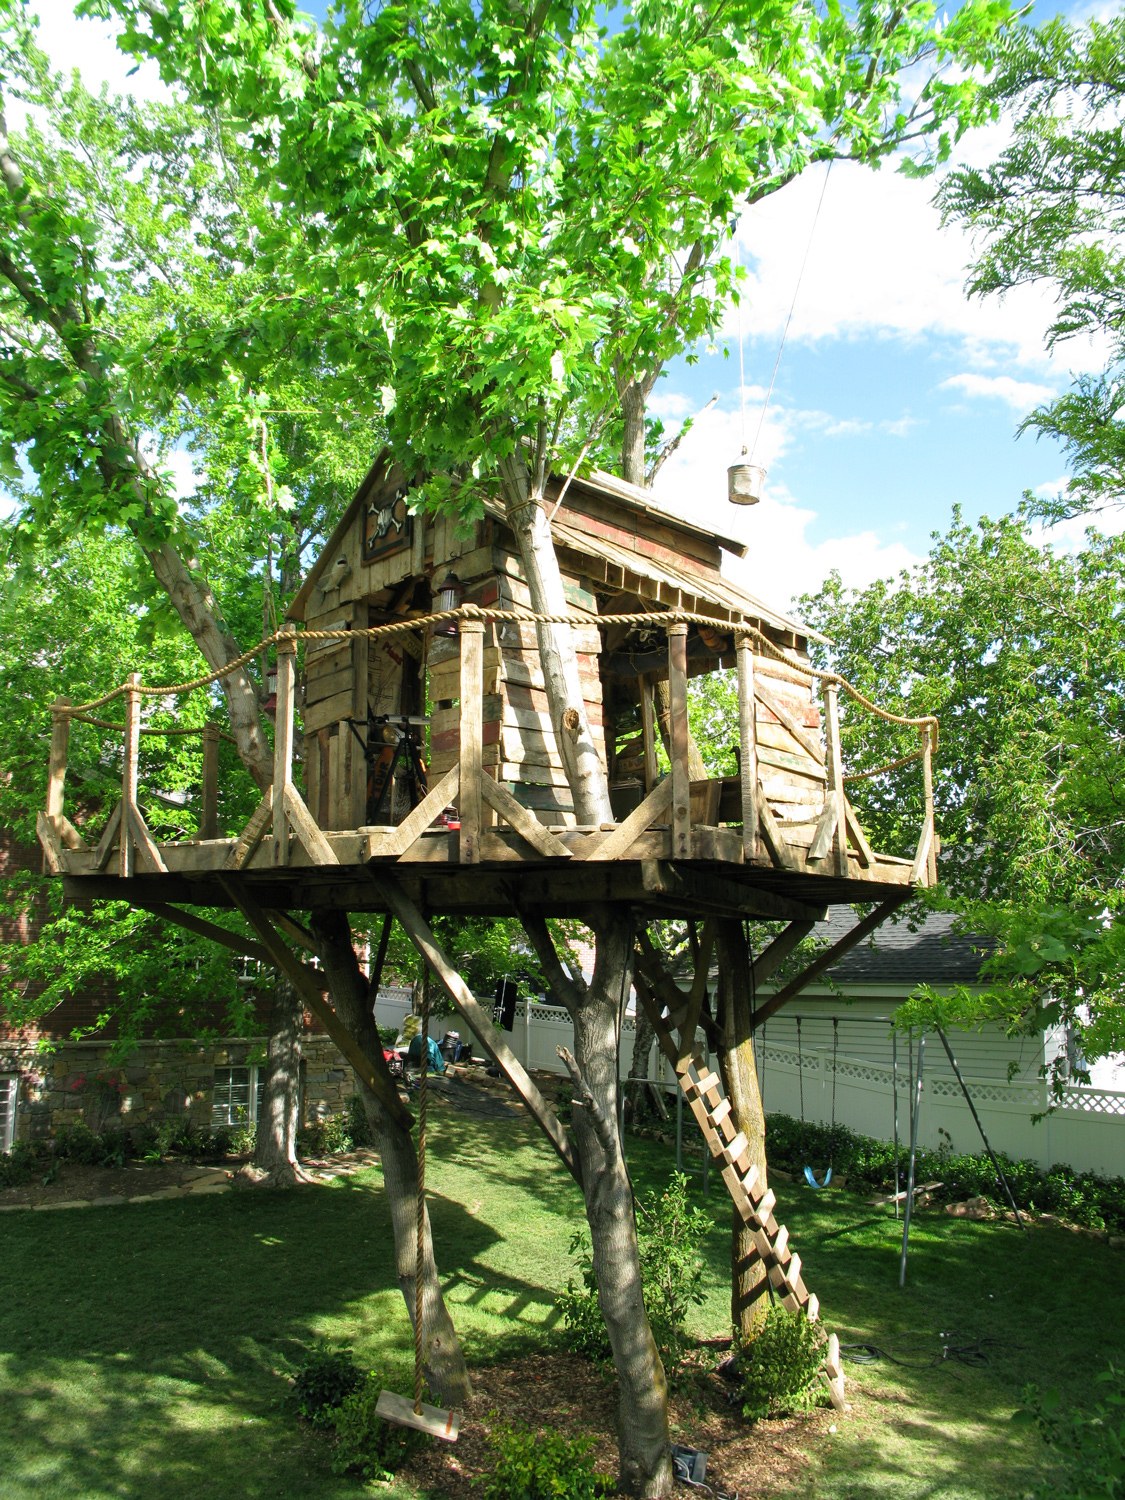 """A photo of the completed treehouse from """"High School Musical 3"""" (2008). The oversized deck was required to accommodate the choreography for the musical number """"Right here, right now""""."""